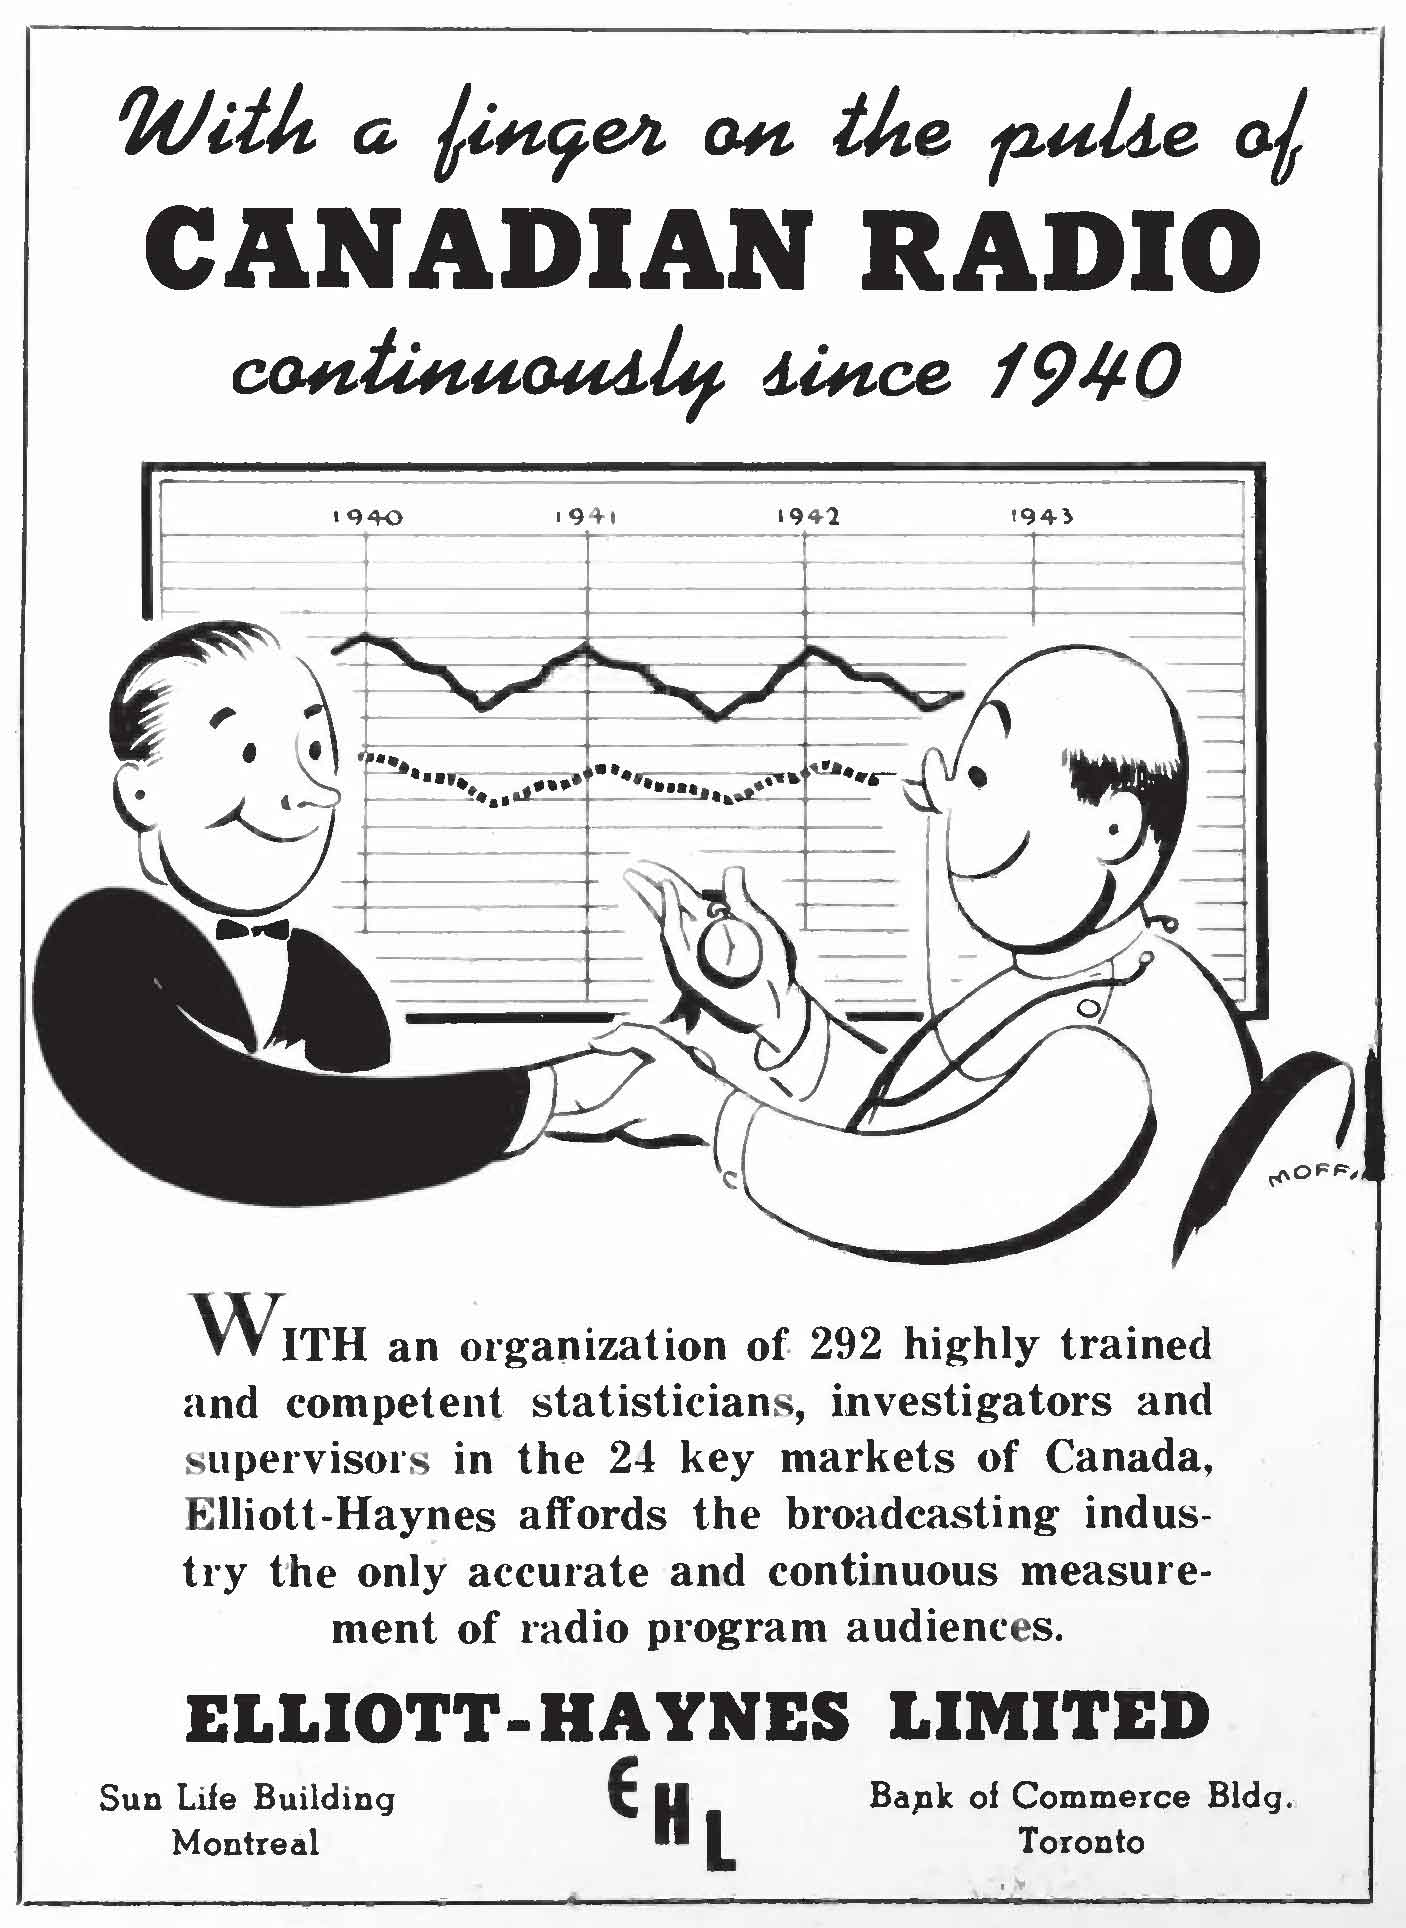 Old paper ad with drawing of two men shaking hands in front of a line graph with dates,says With a finger on the pulse of CANADIAN RADIO continuously since 1940.